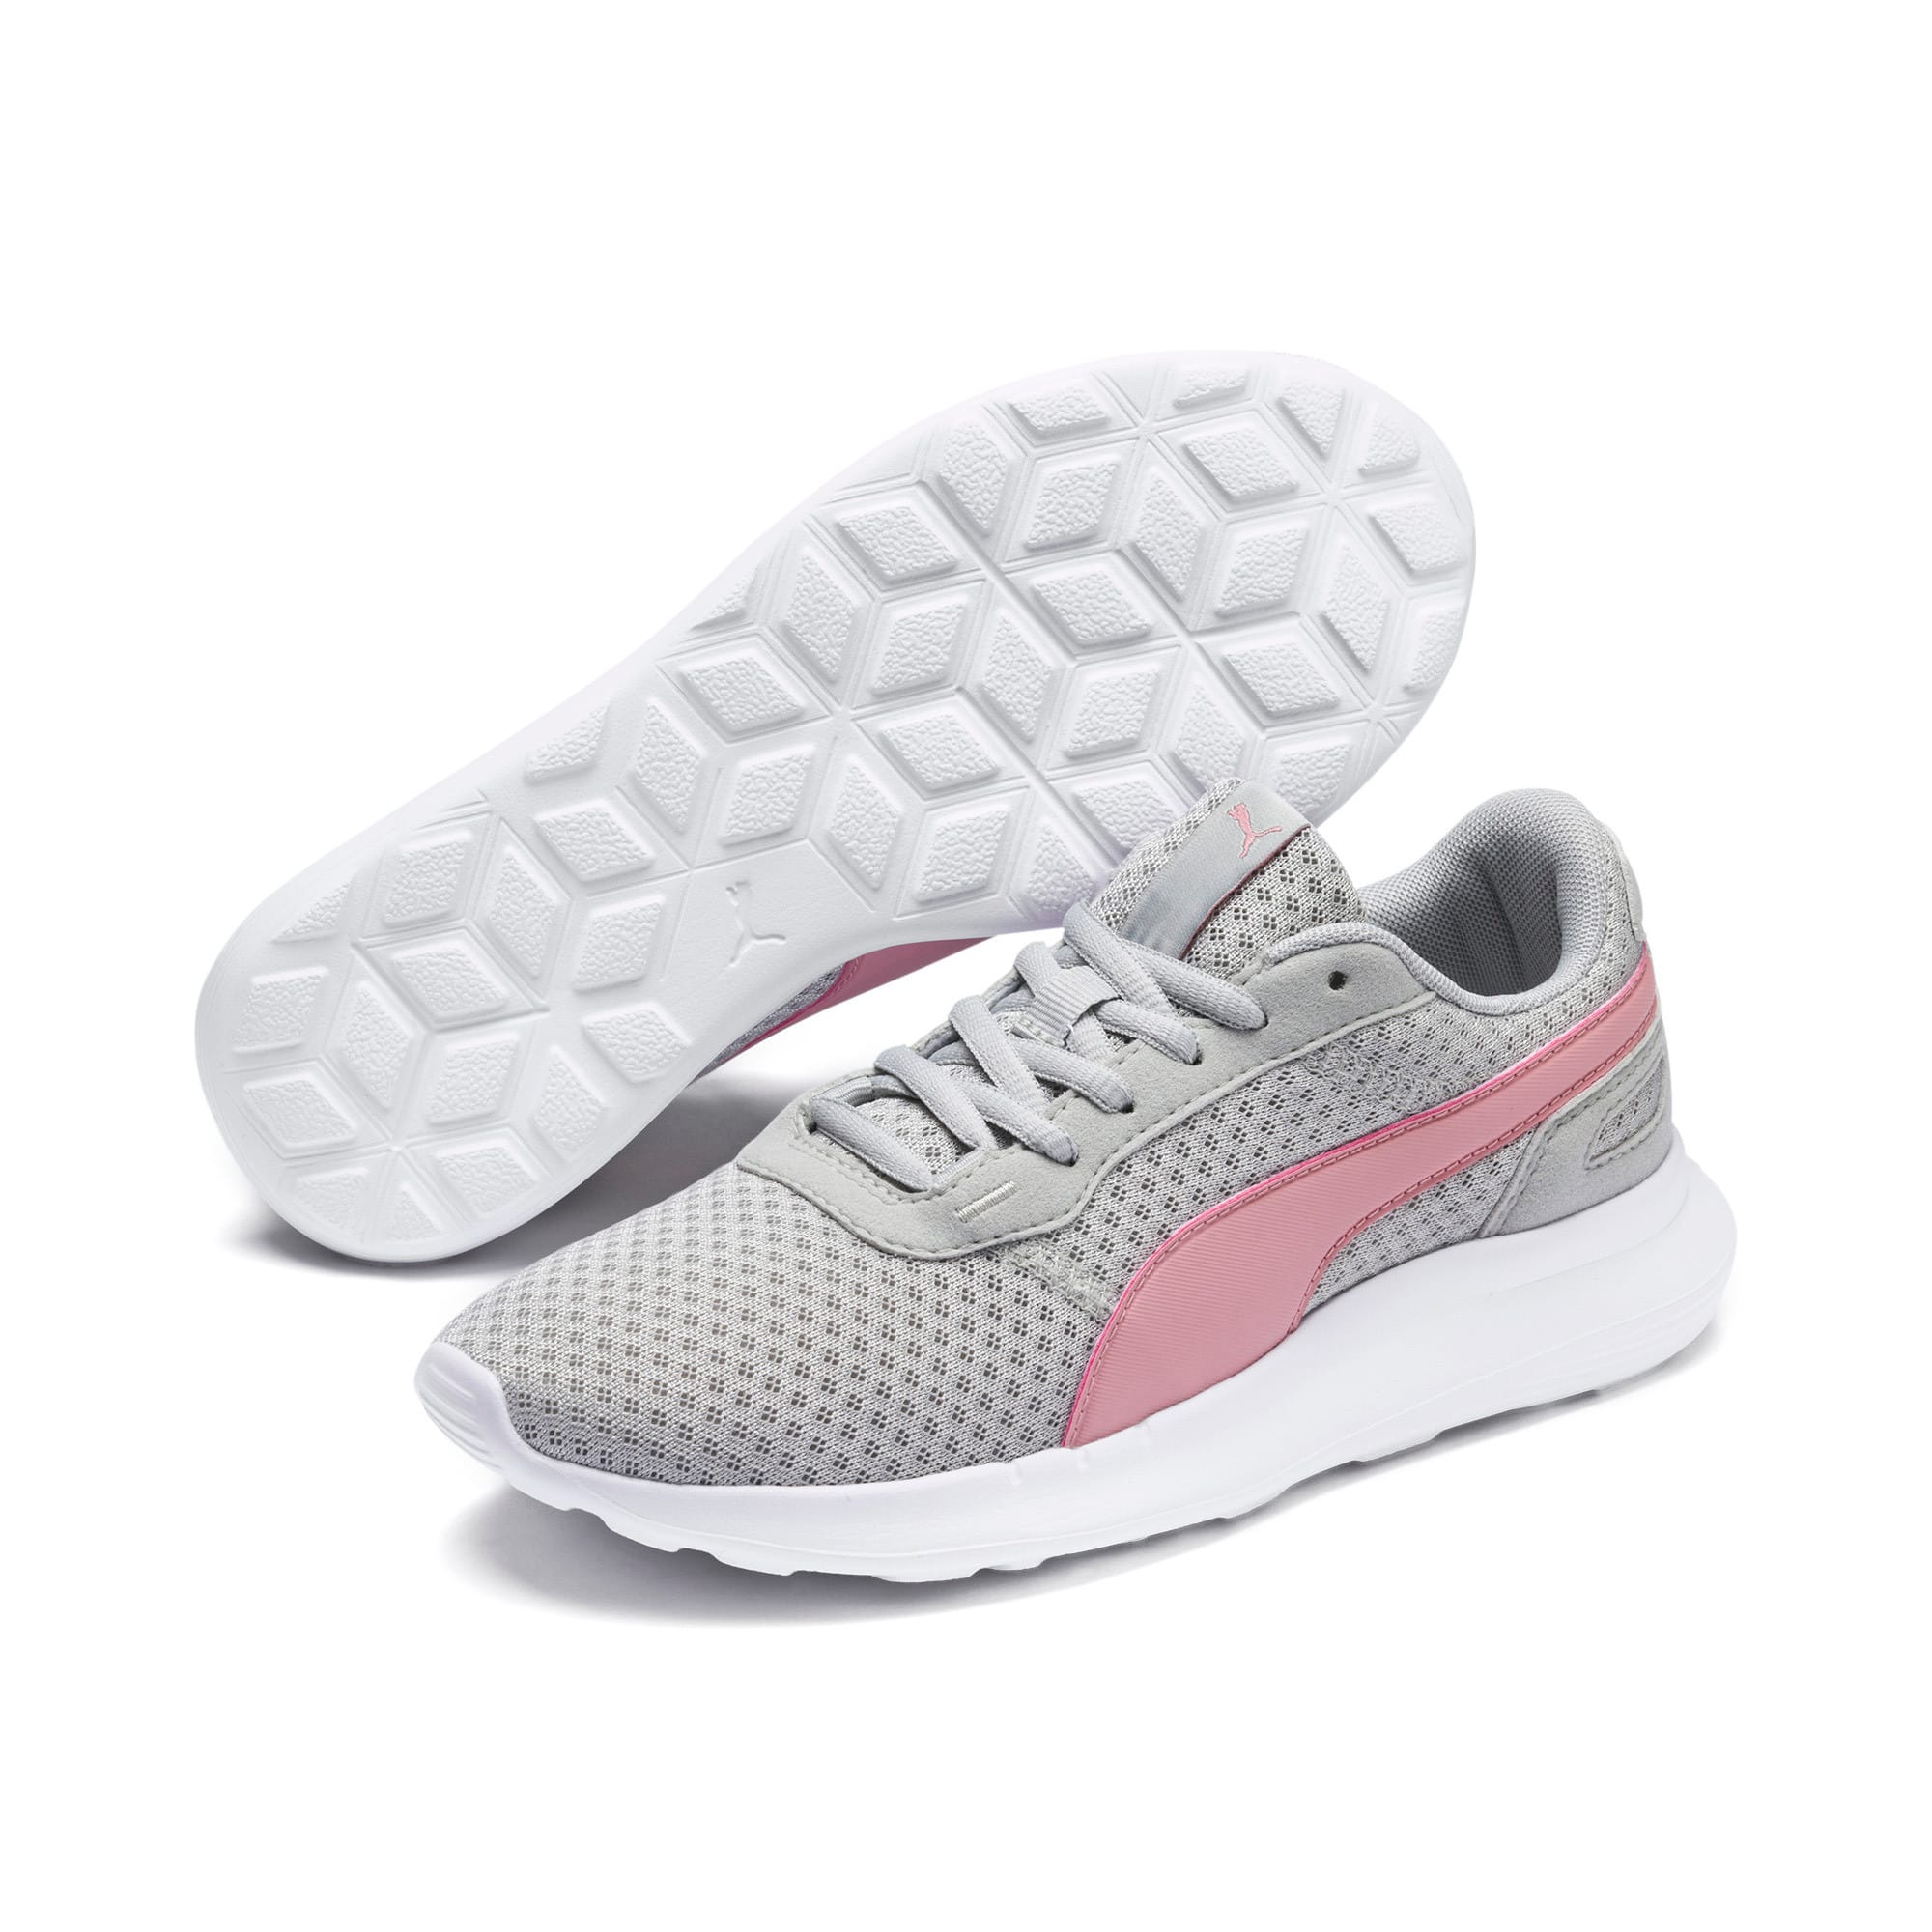 Thumbnail 2 of ST Activate Sneakers JR, Gray Violet-Bridal Rose, medium